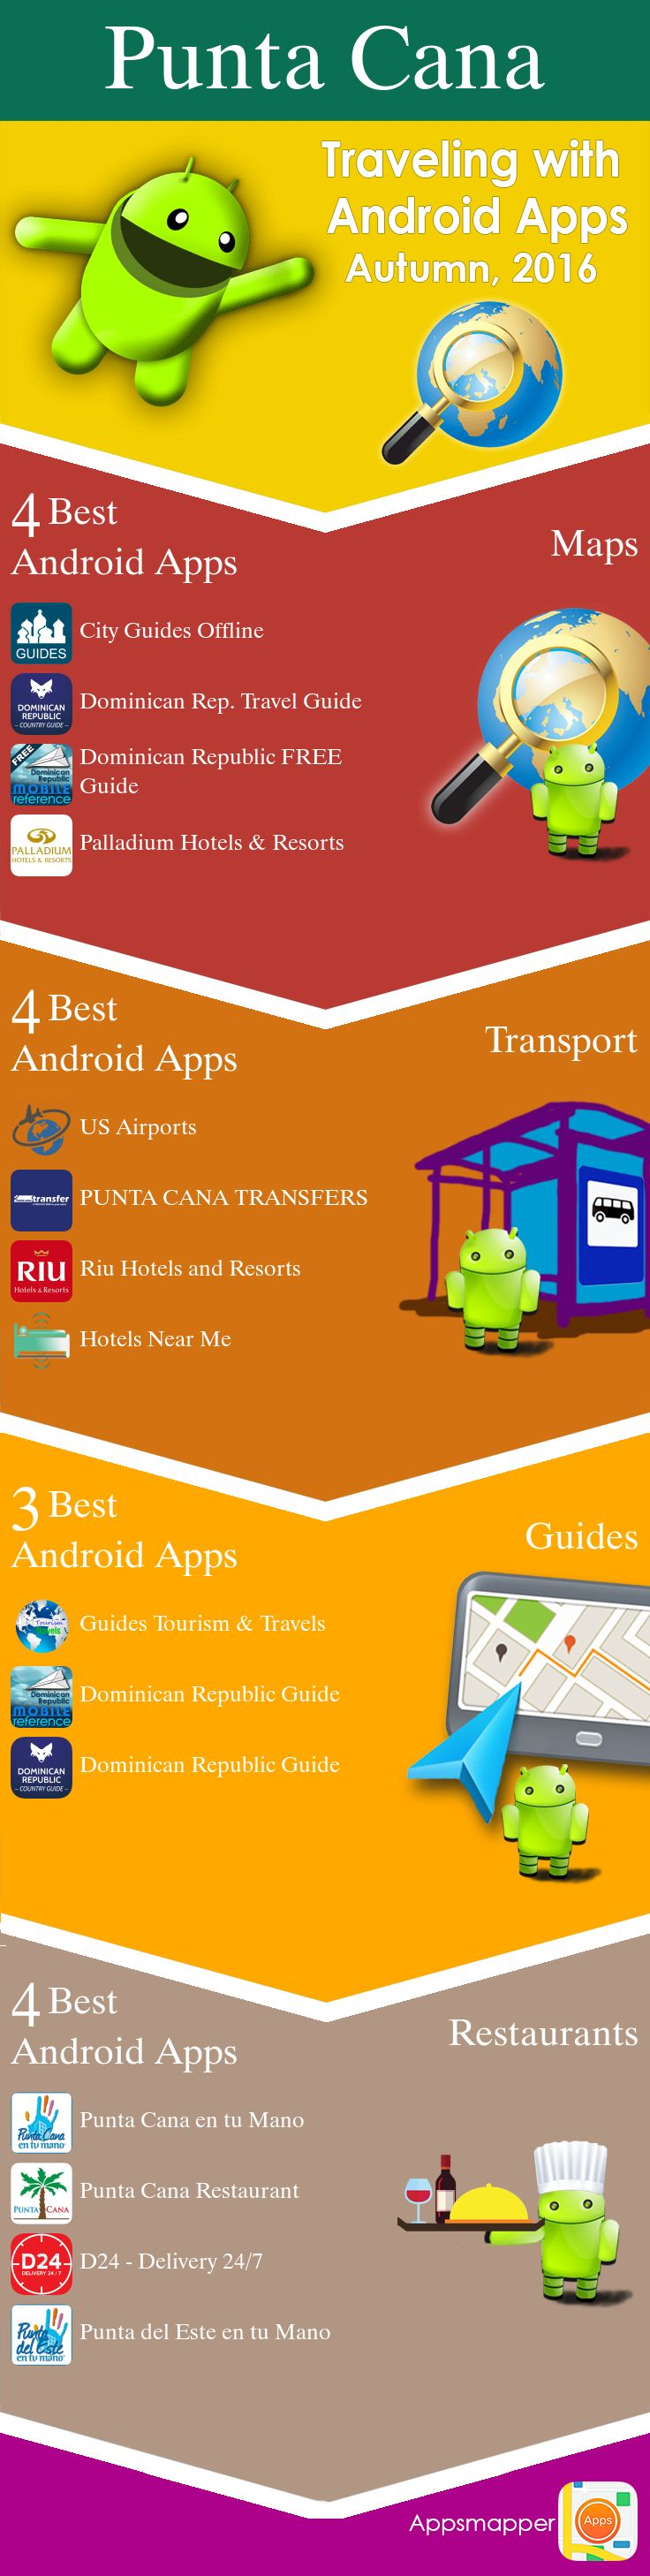 Location aware index of apps for Travel